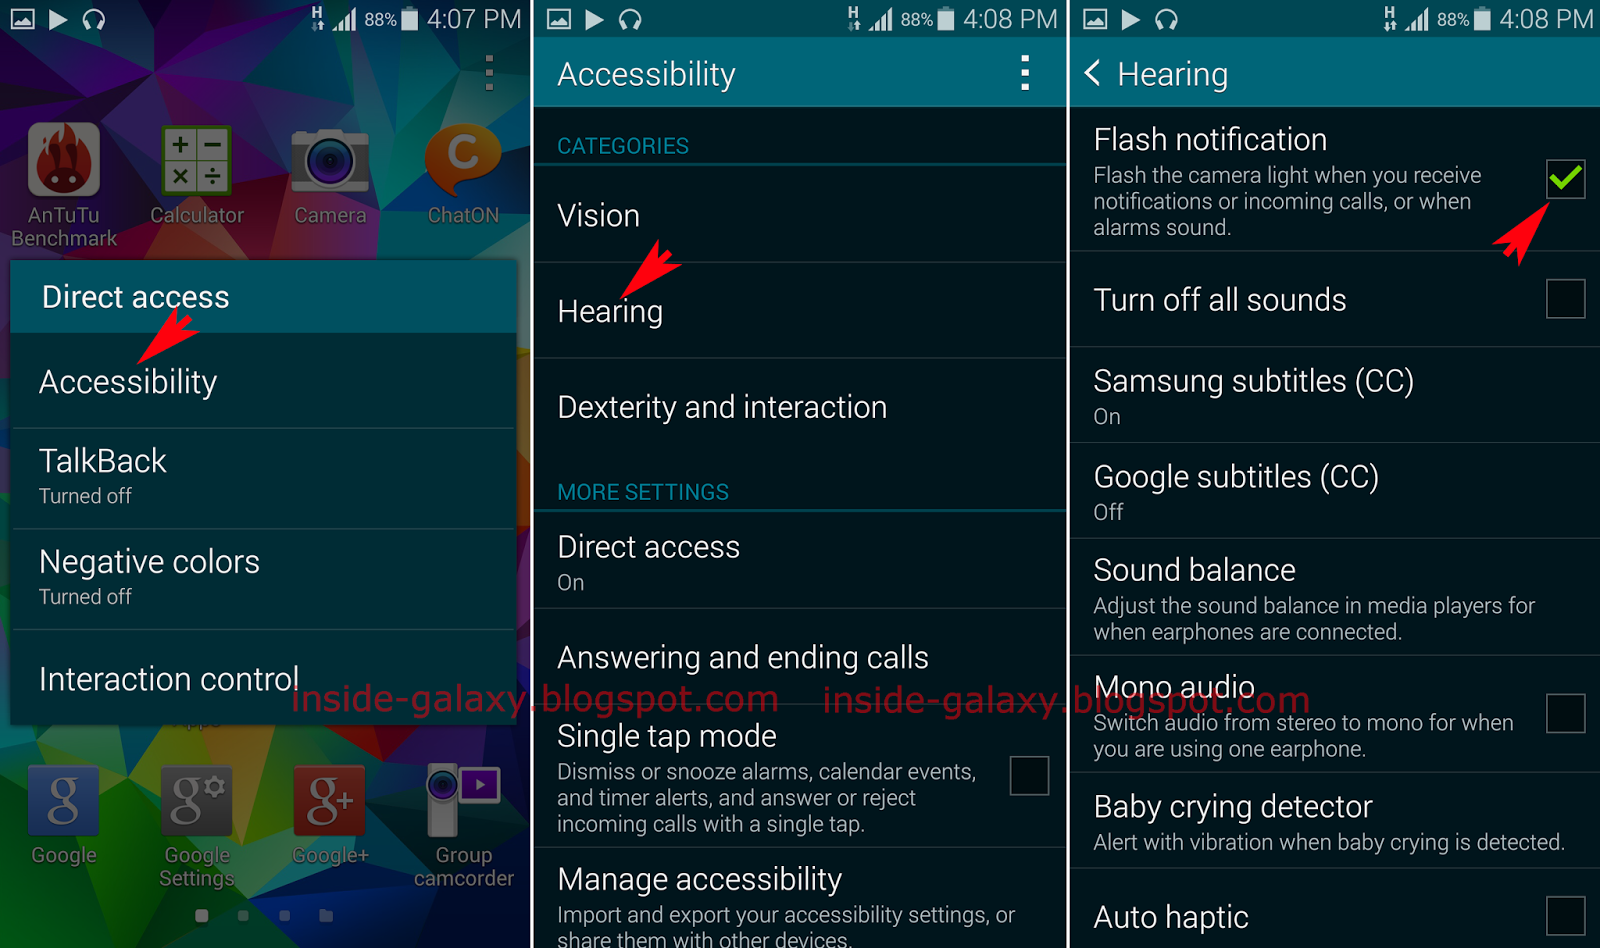 Samsung Galaxy S5: How to Enable or Disable Flash Notification in